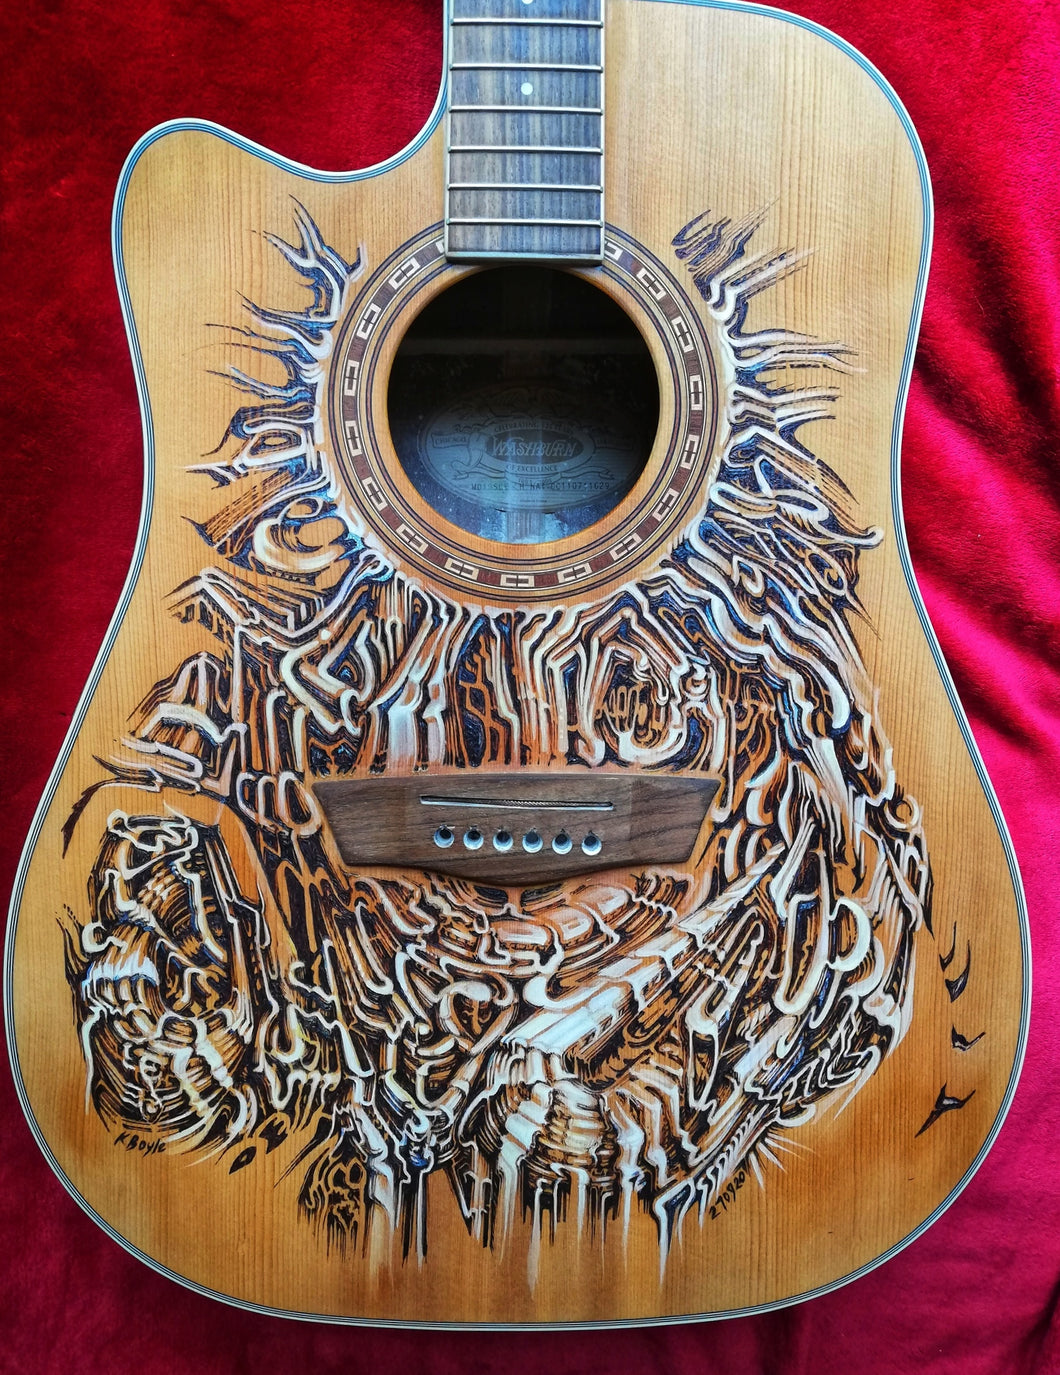 270920 Unique KBoyle Artwork on Washburn L/H Guitar  ***COMPETITION***